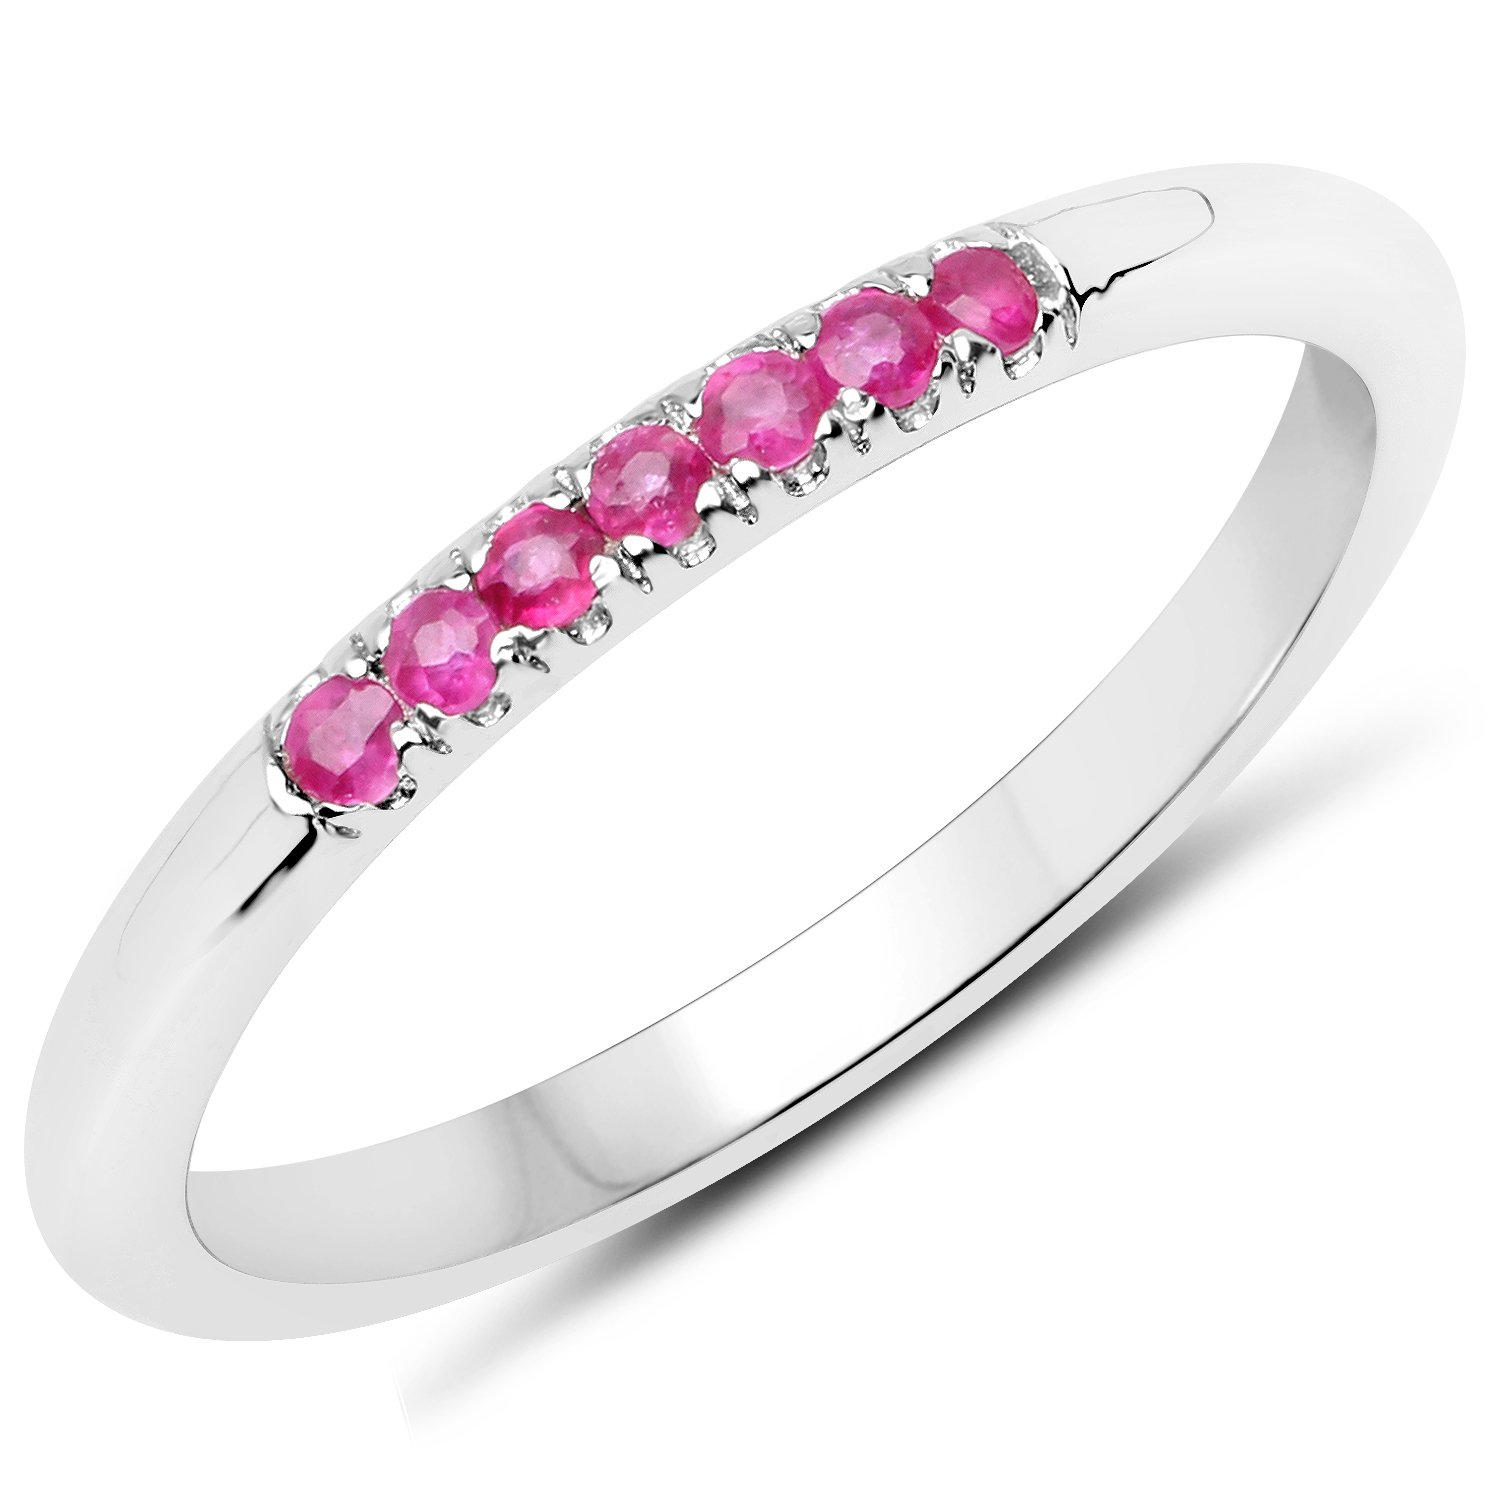 LoveHuang 0.12 Carats Genuine Ruby Stacking Ring Solid .925 Sterling Silver With Rhodium Plating by LoveHuang